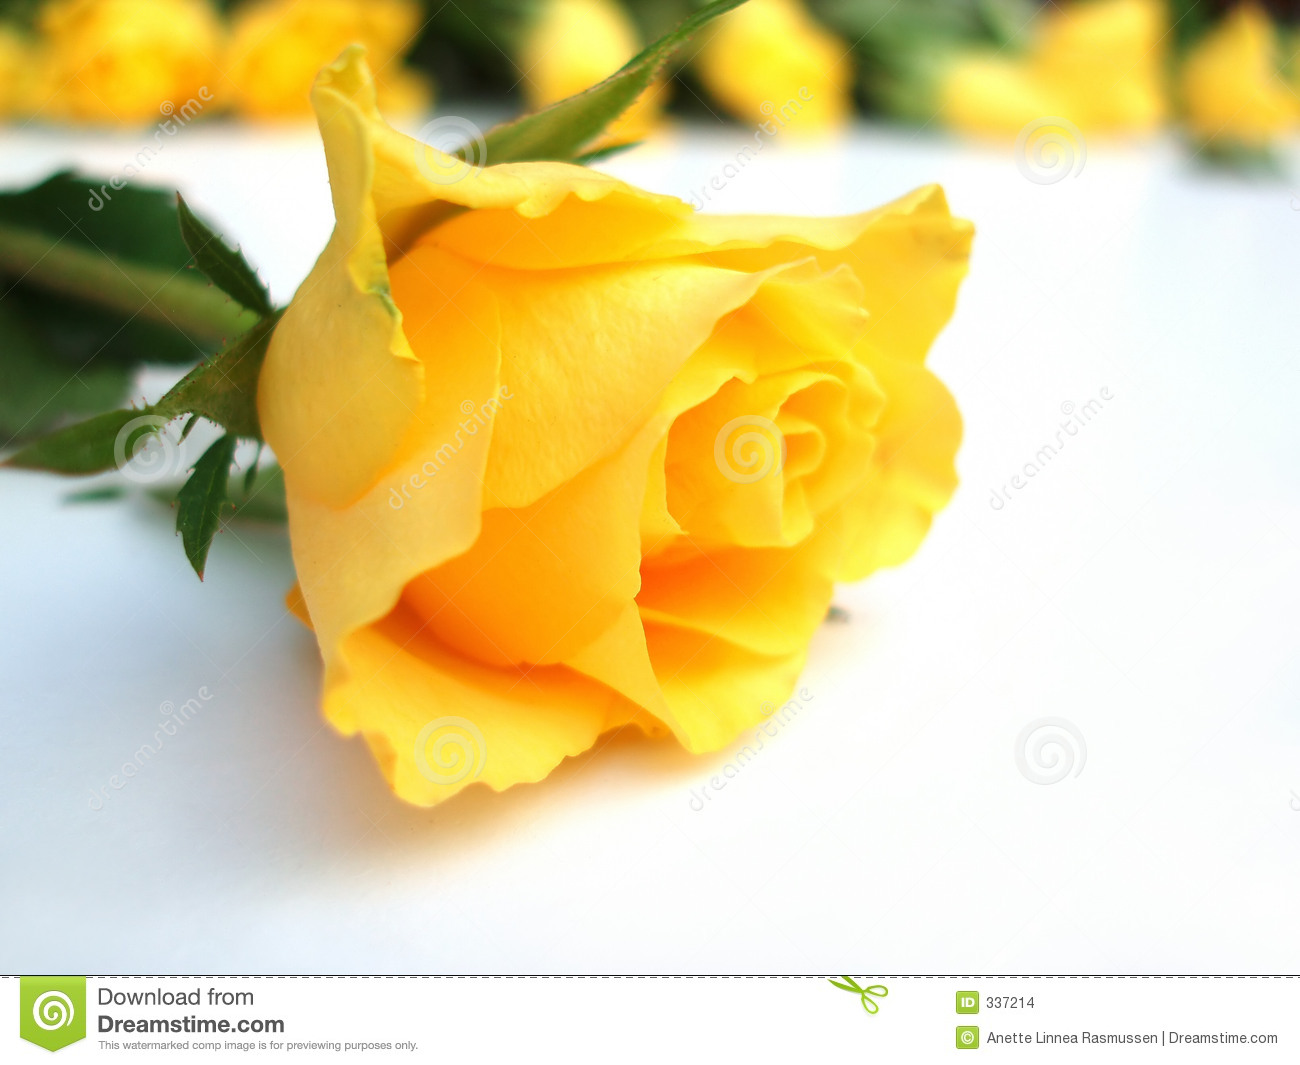 Bunch of yellow roses – one rose single